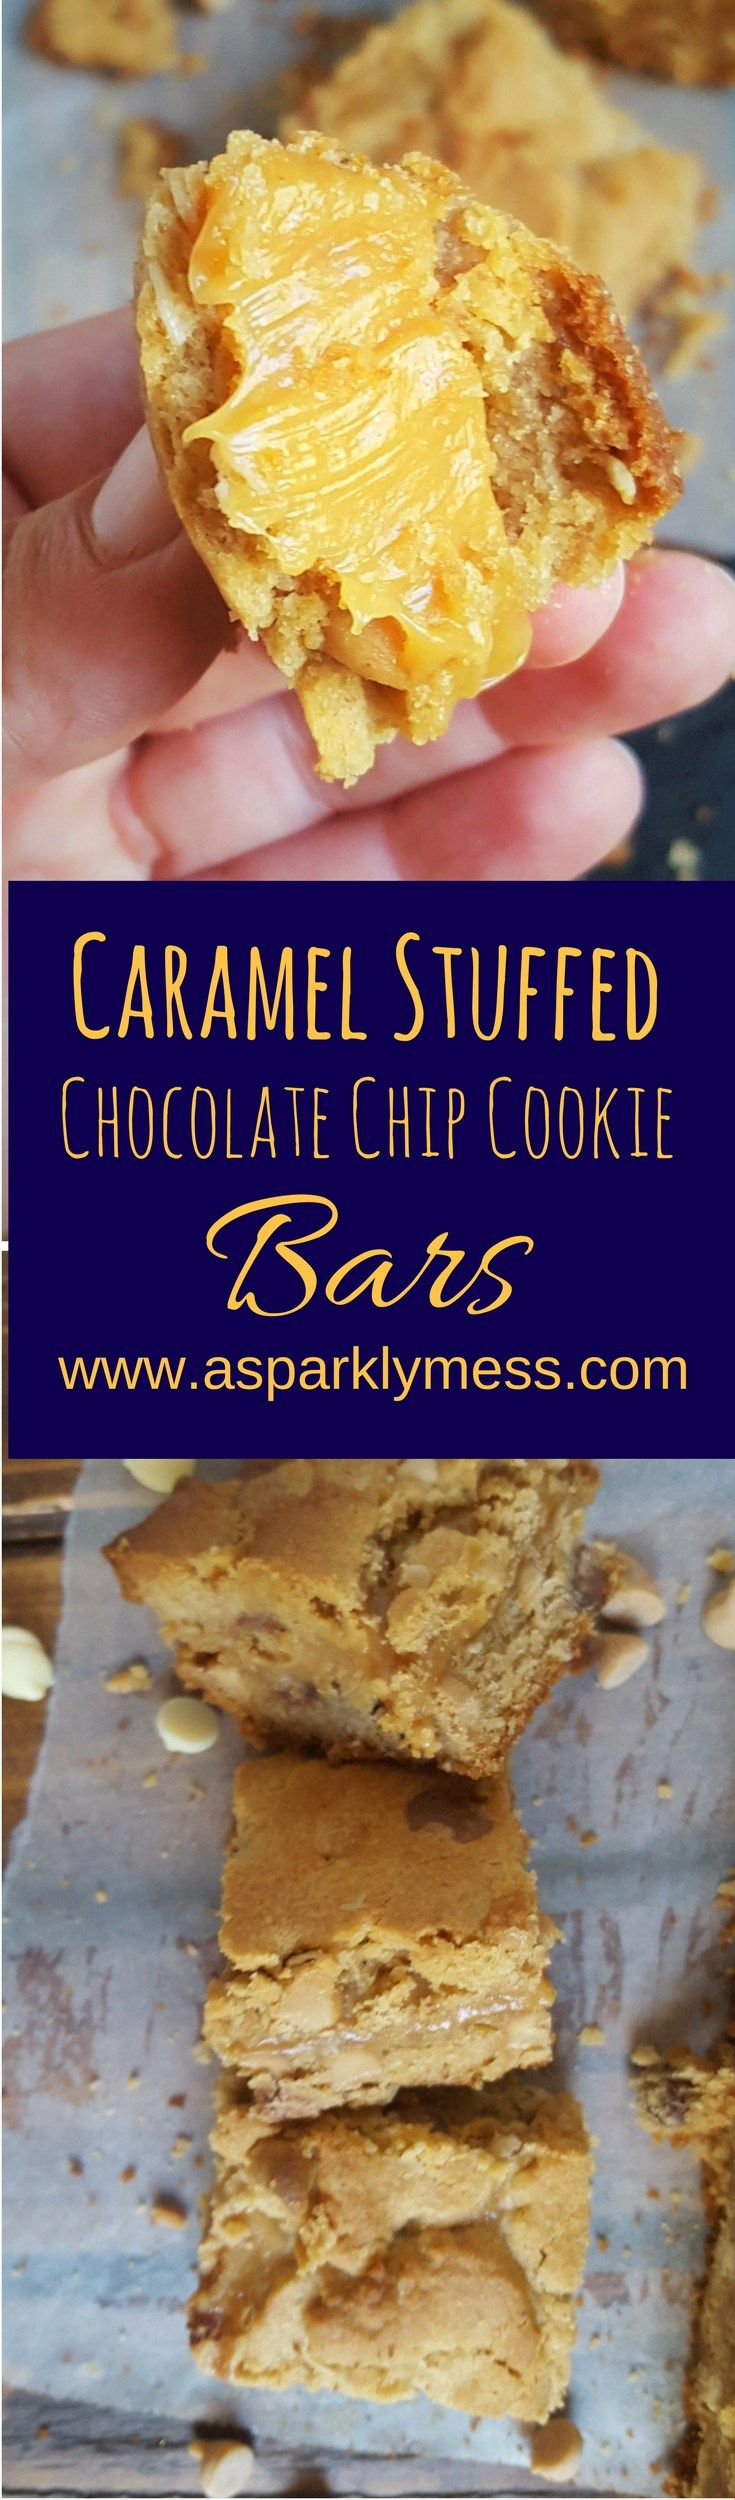 These Caramel Stuffed Cookie Bars are amazing! I mean how could they not be amazing. They are stuffed full with all the best things! Soft chewy peanut butter chocolate chip cookies as a crust on the top and bottom. With an incredible creamy caramel filling. You will not be able to stop eating them and...